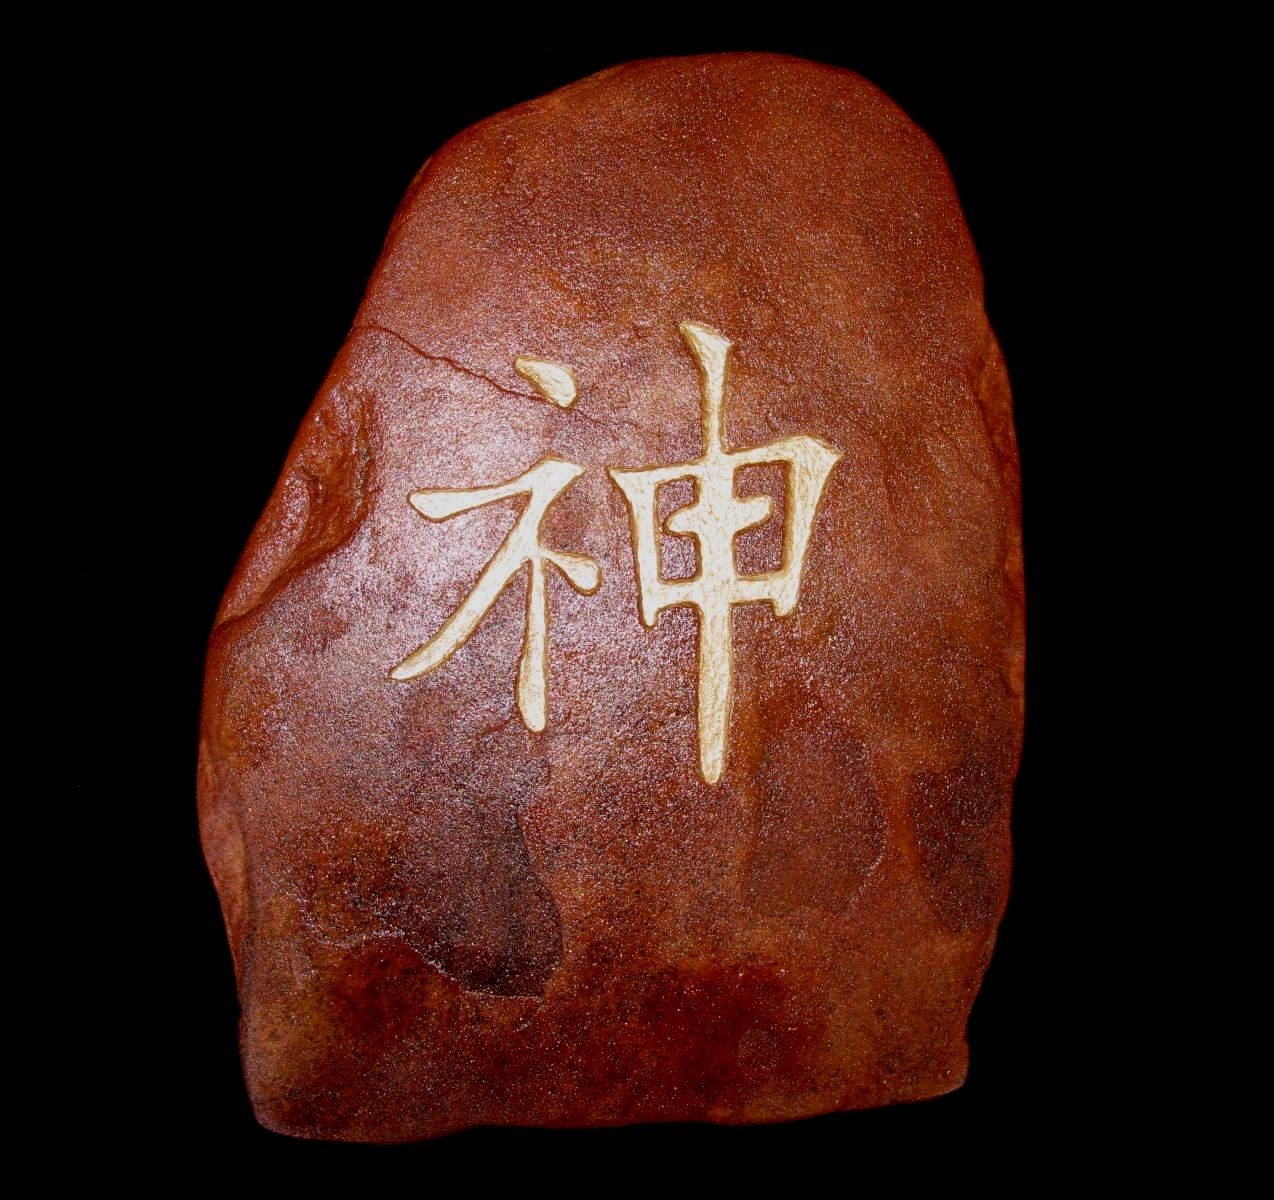 chinese symbol of god